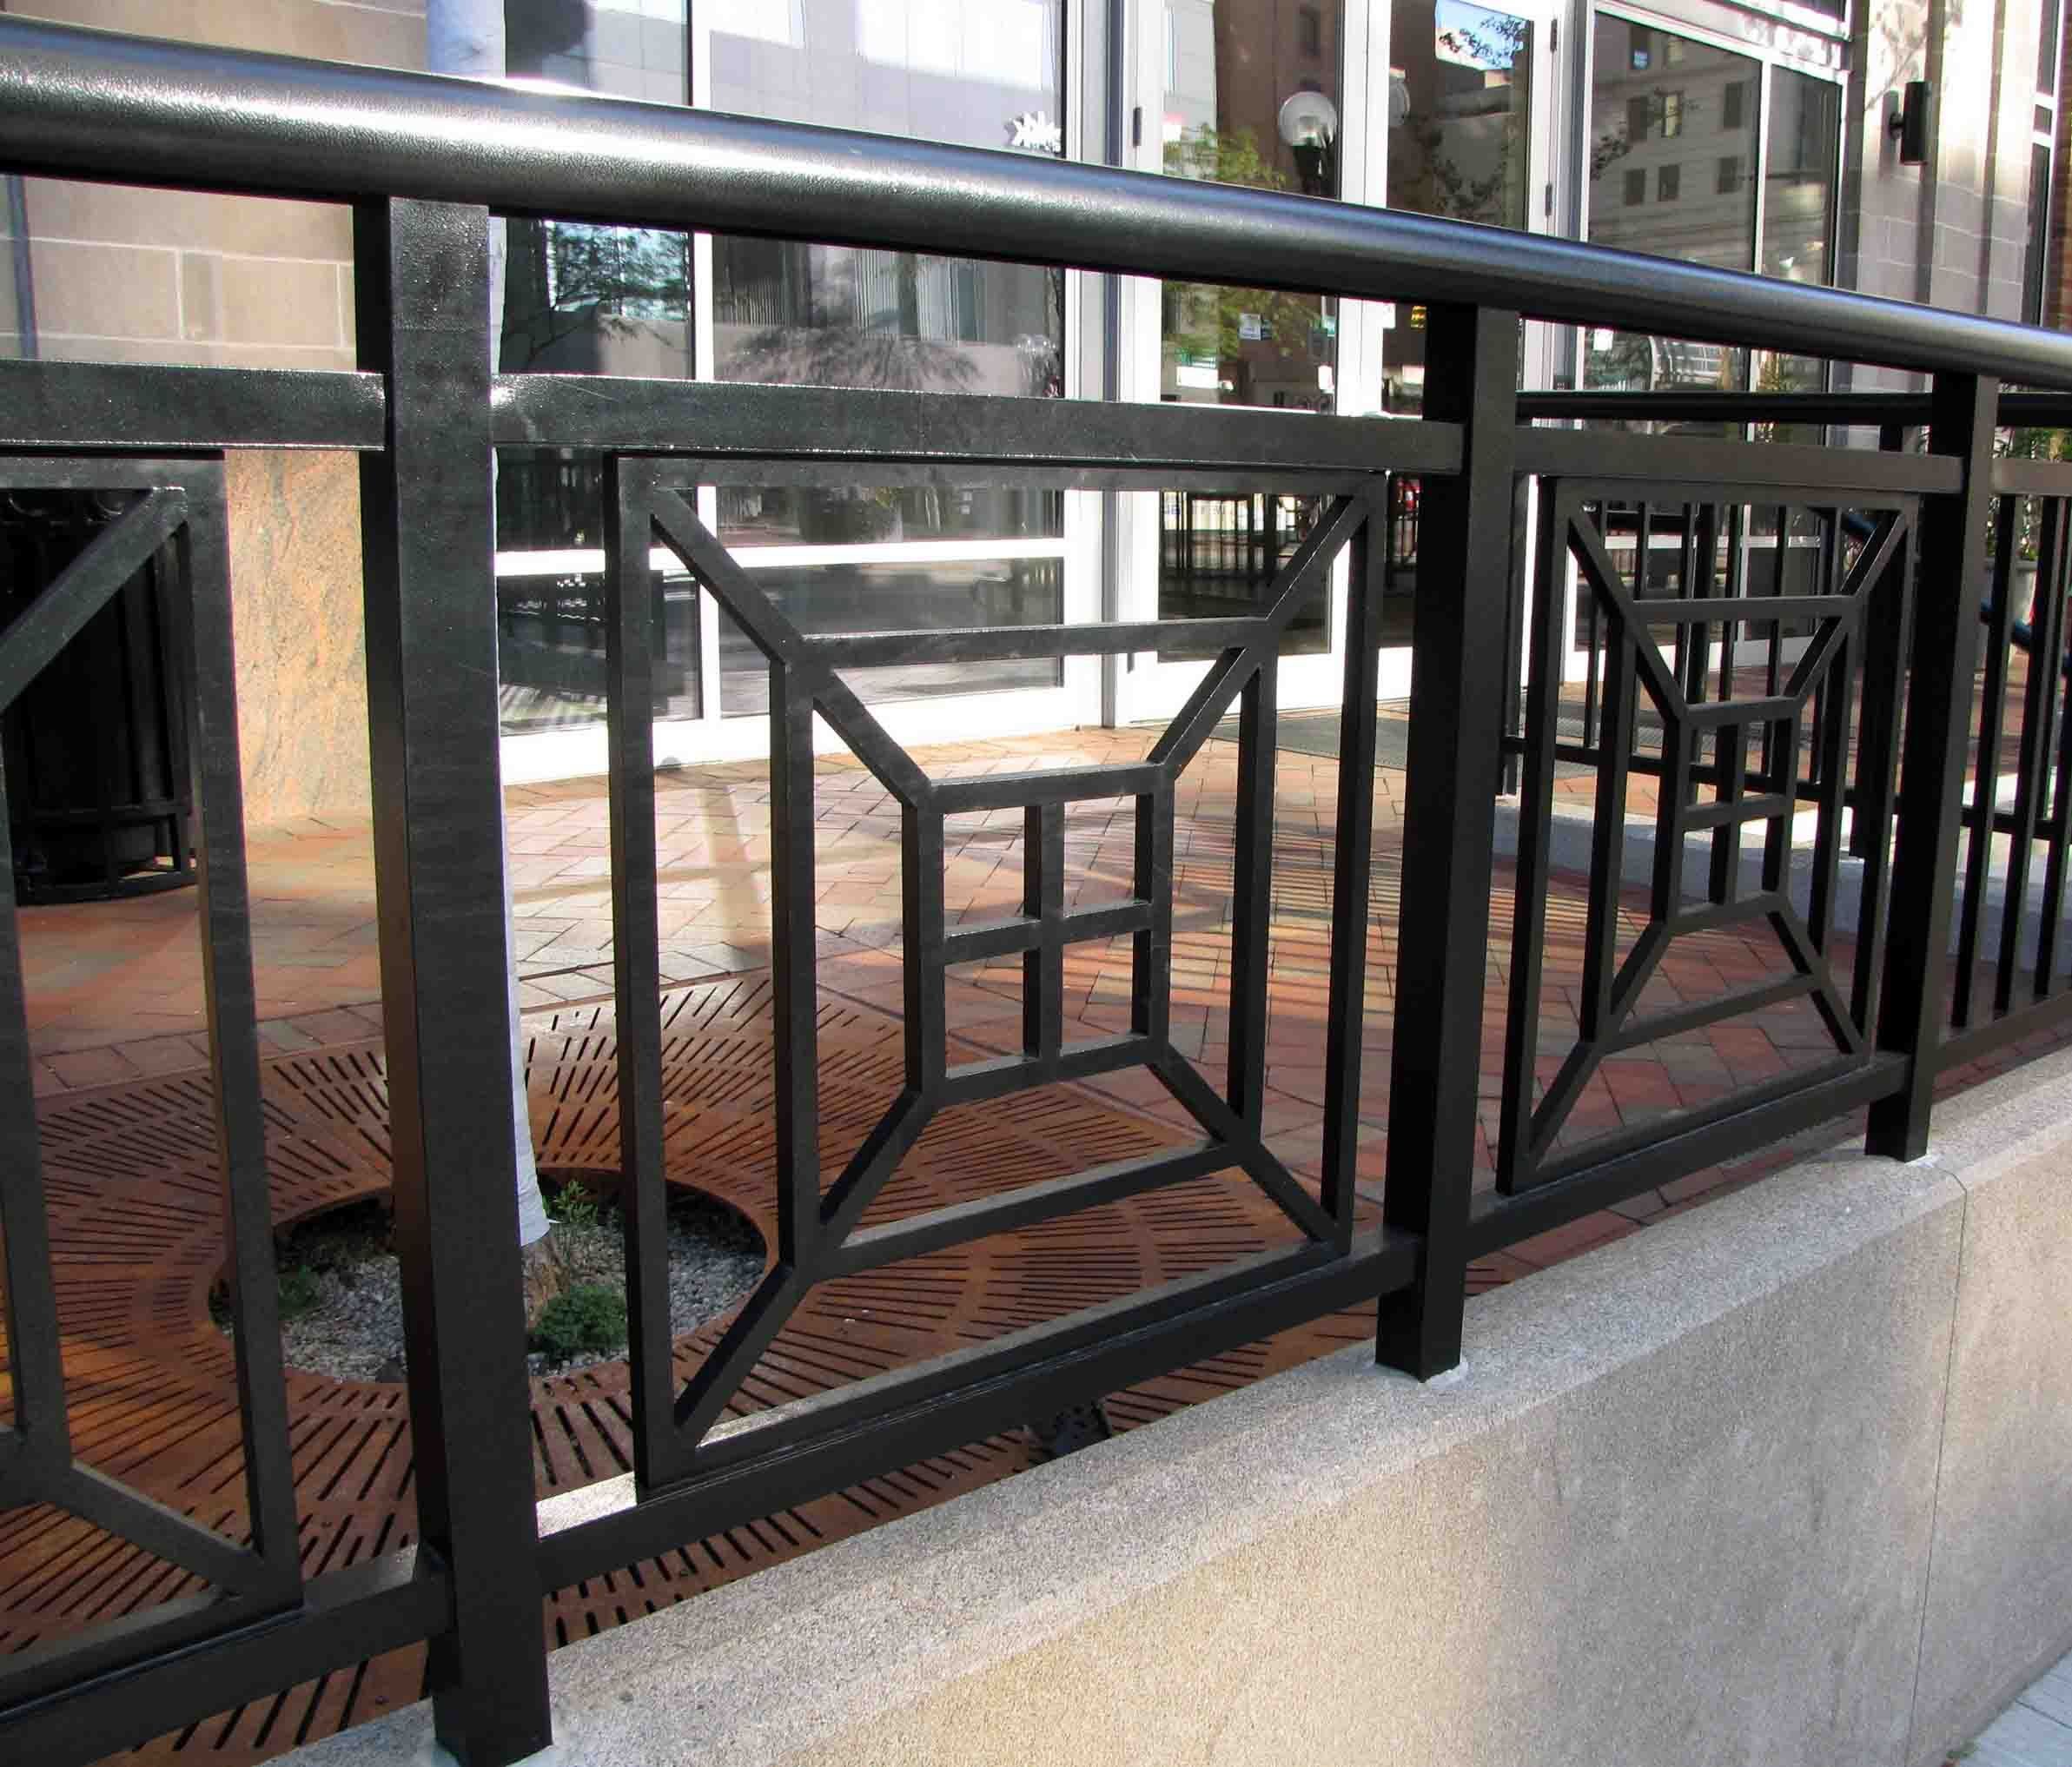 Photos Of Railing For Outside Steps | Exterior Steel Rails Exterior Steel  Rail With Cable Guard. Metal Stair RailingOutdoor RailingsIron ...